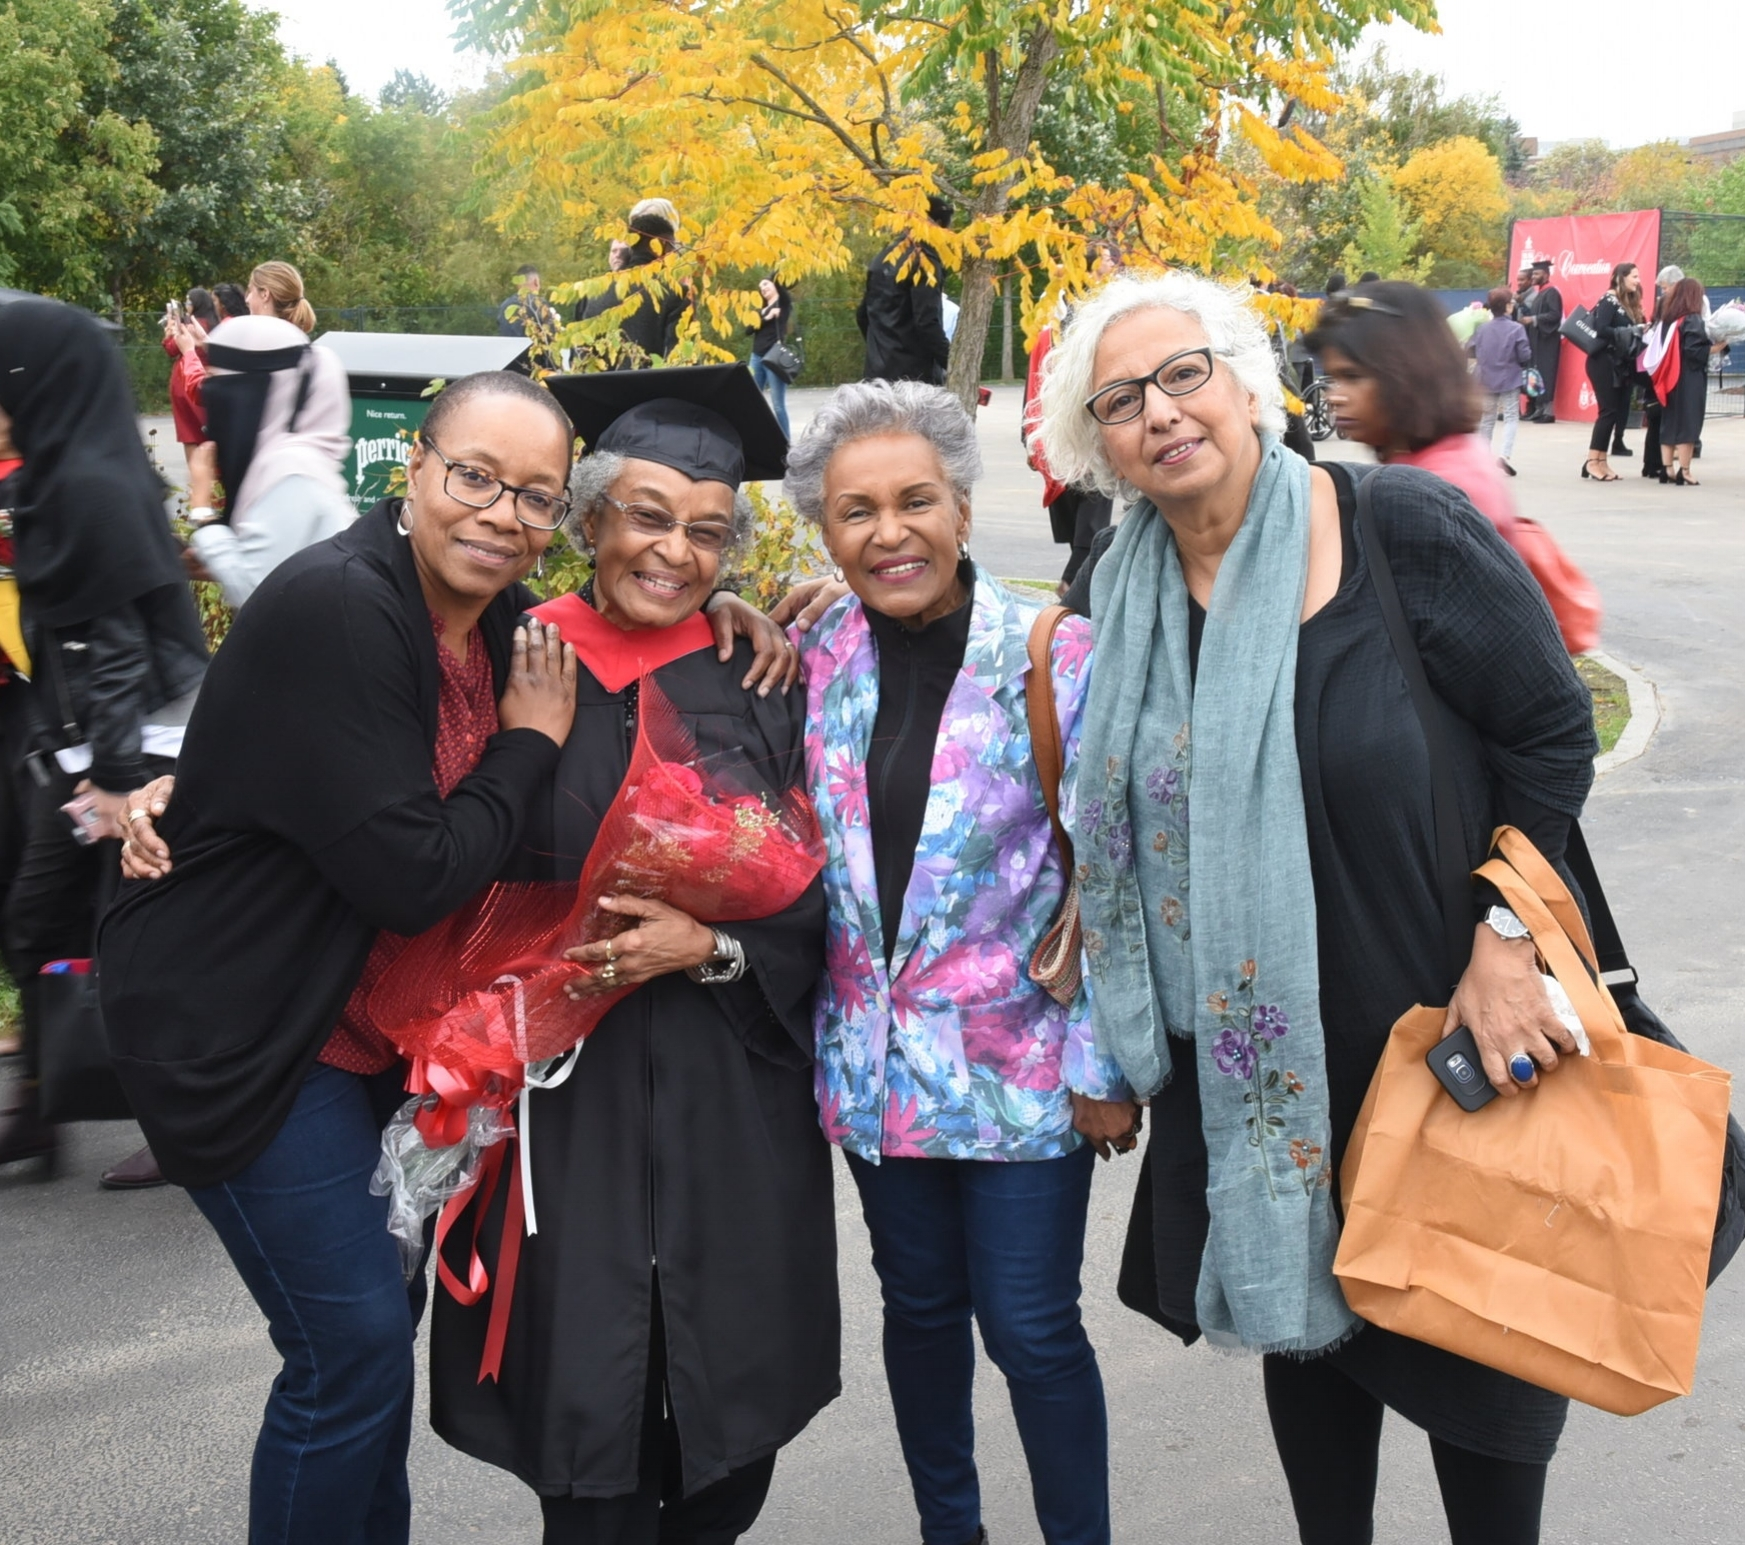 Hortense Anglin joined Celeta Irvin (l) and Nadia Habib (r) in congratulating her older sister Osra Lindo